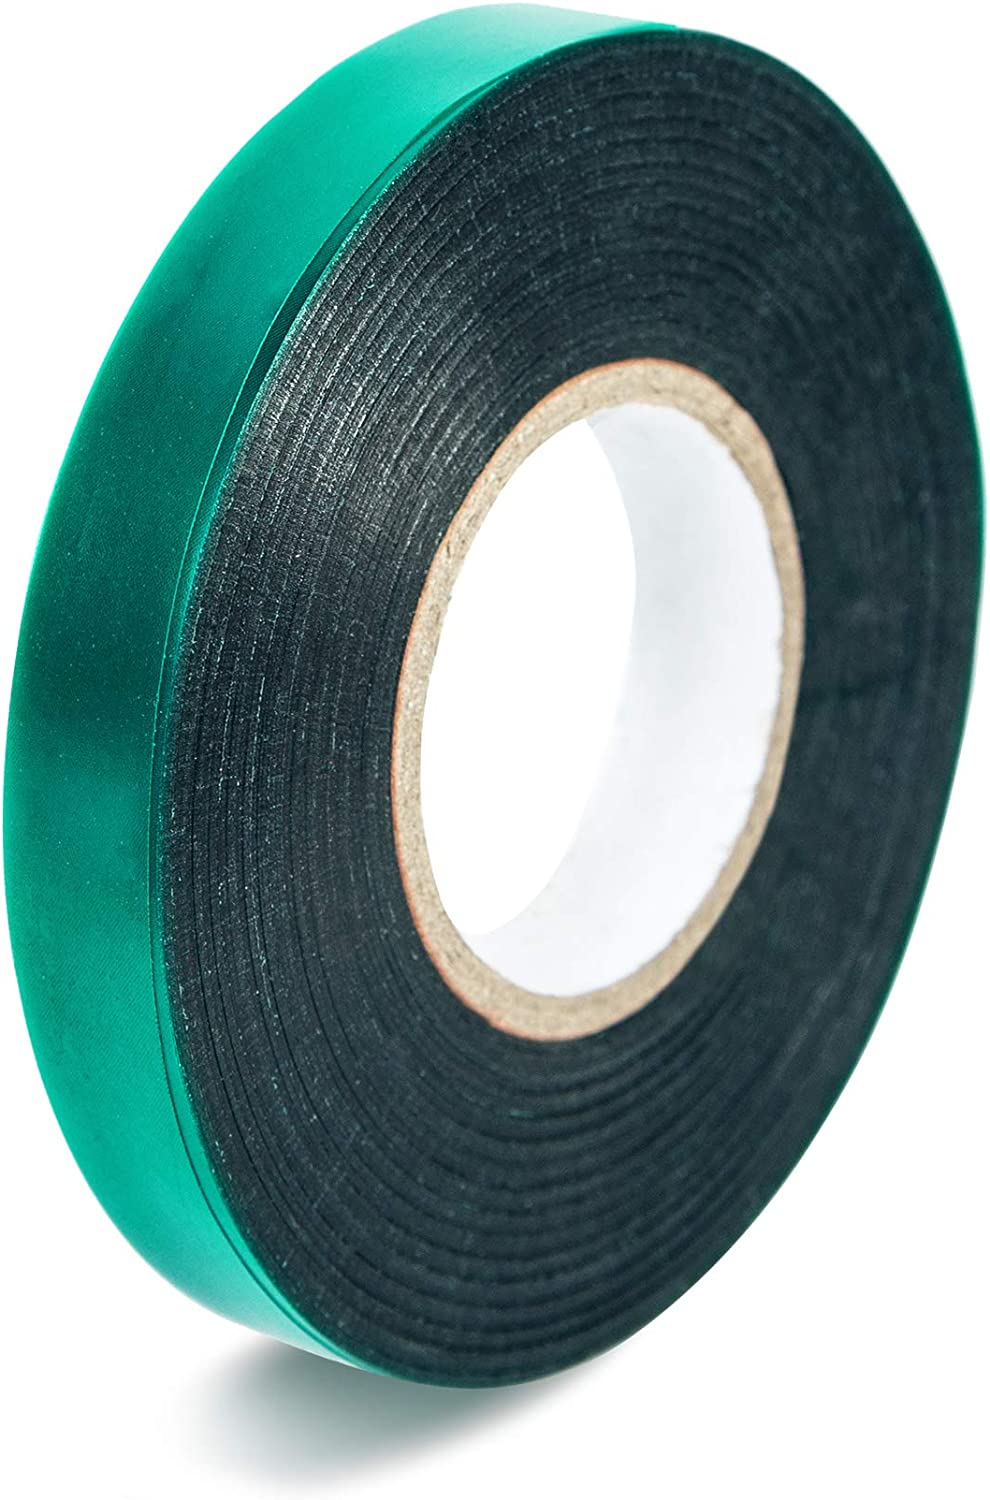 Unves Stretch Tie Tape Roll 1 for Ft lowest price Garden New mail order 2